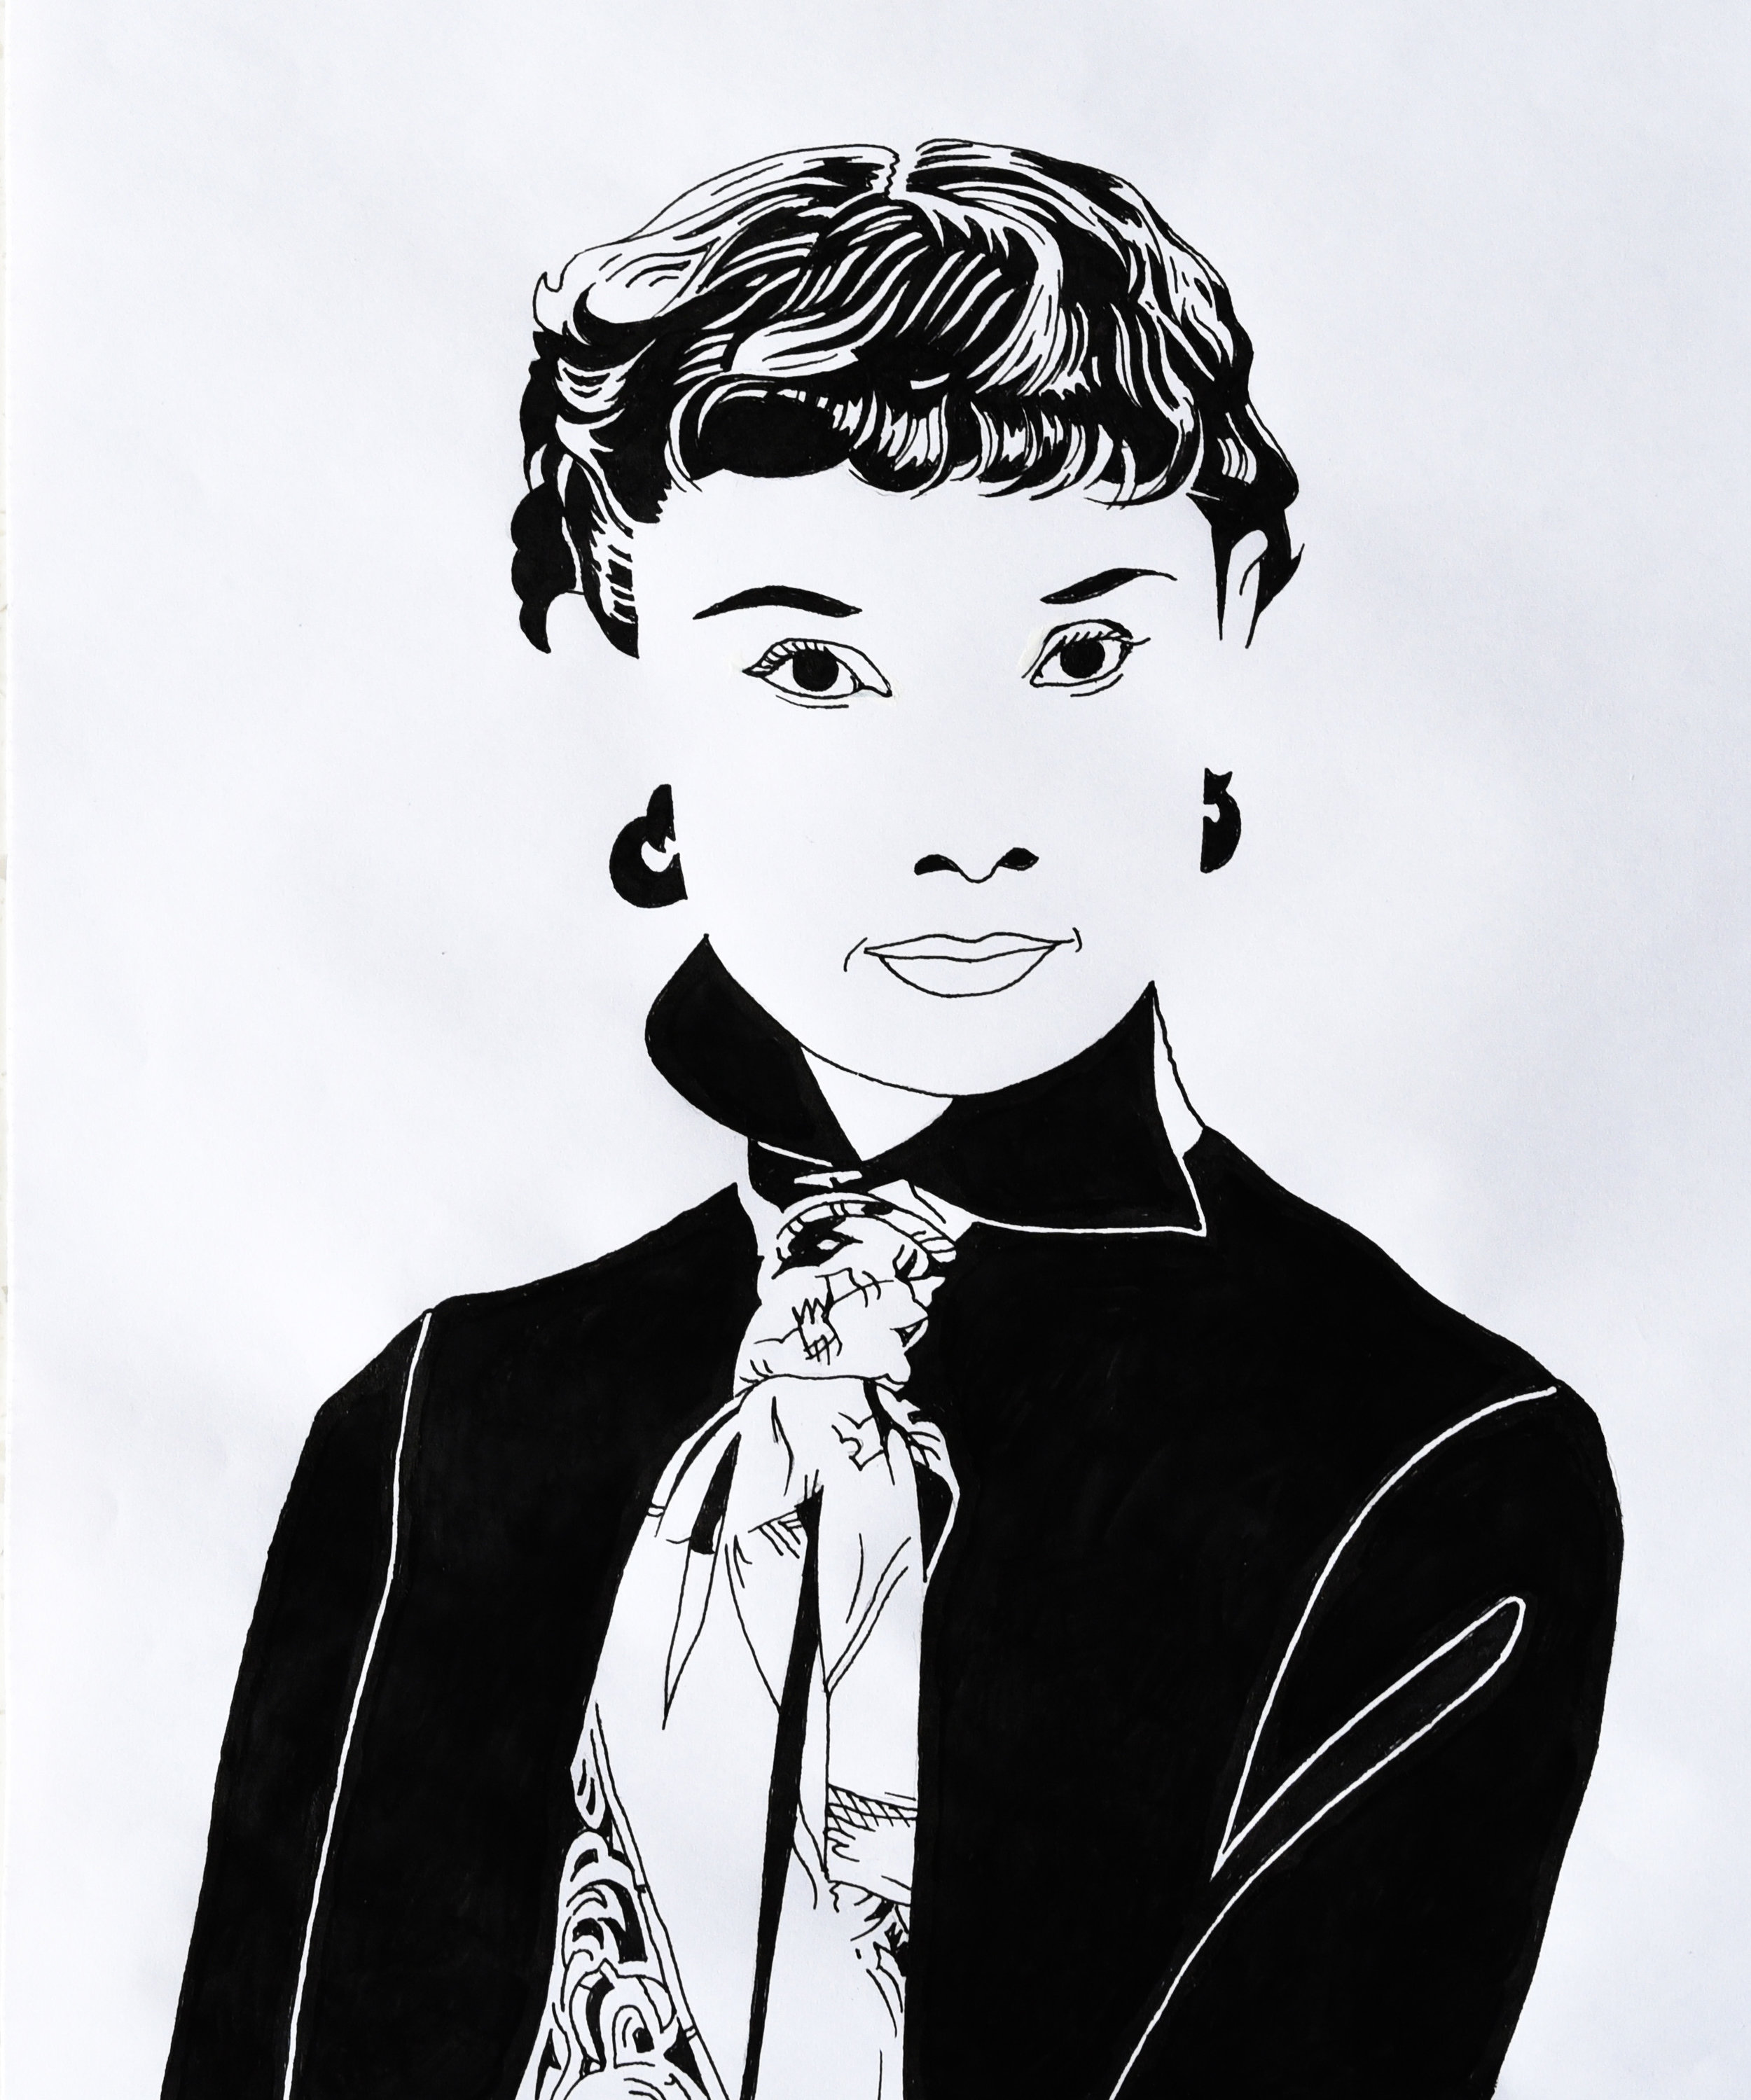 Audrey Hepburn black and white illustration.